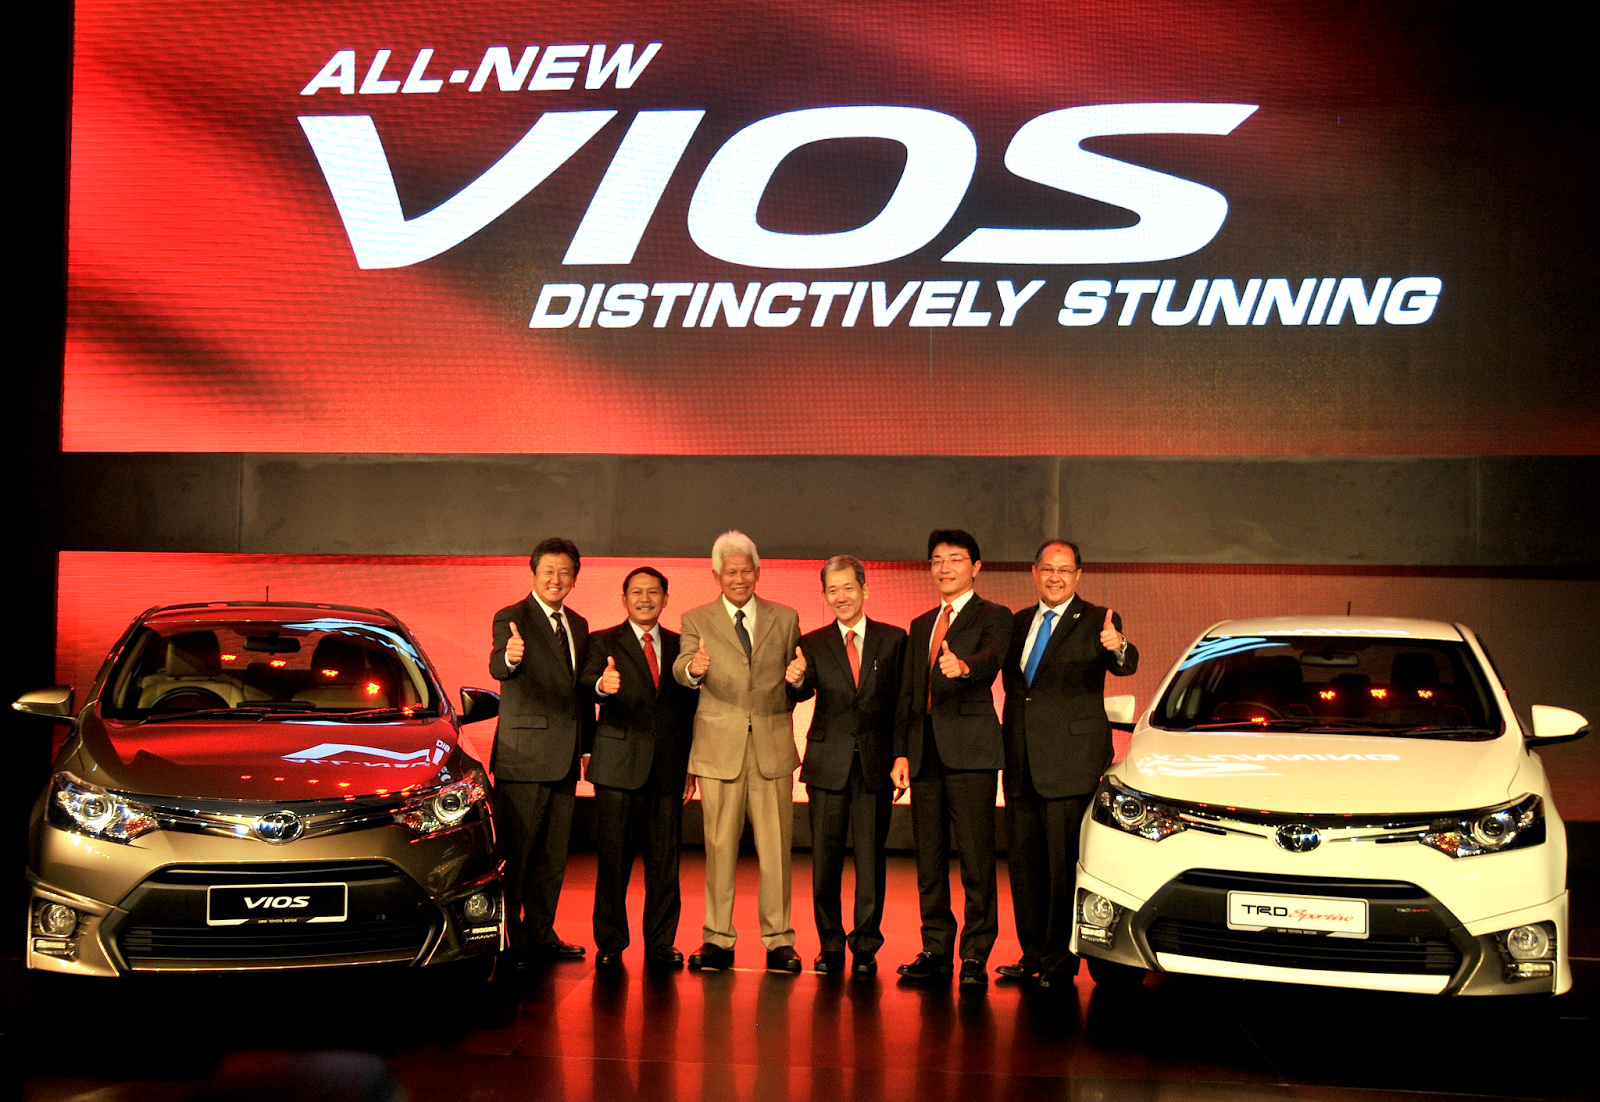 2 october 2013 umw toyota motor manufacturer and distributor of toyota vehicles in malaysia announced the launch of the all new toyota vios today